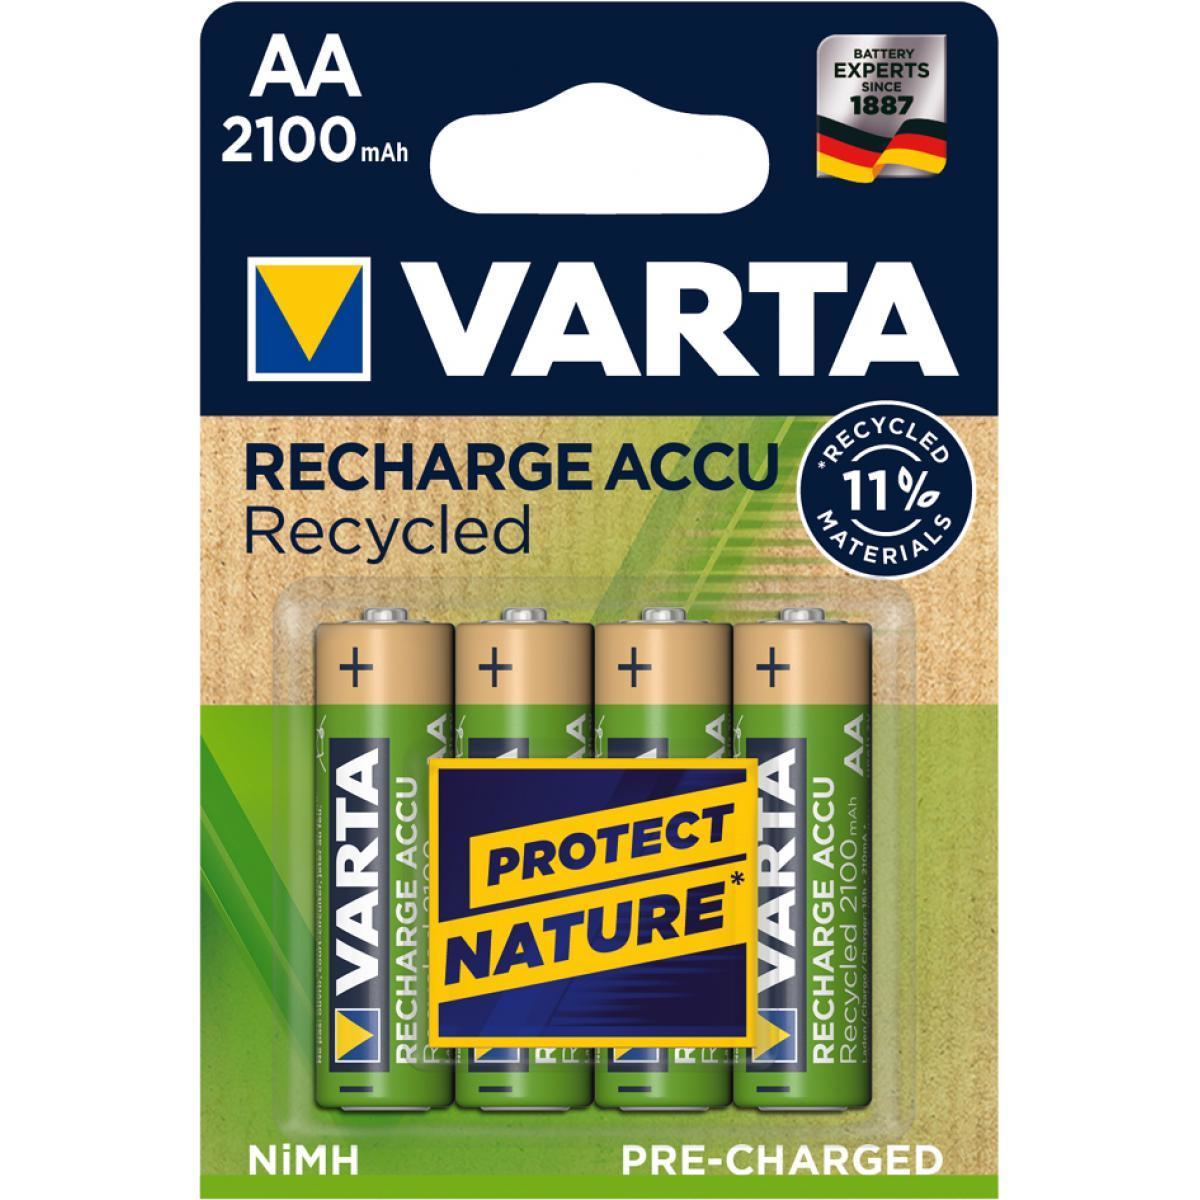 Varta Accu Recycled, Pre-charged, Retail Blister (4-Pack)